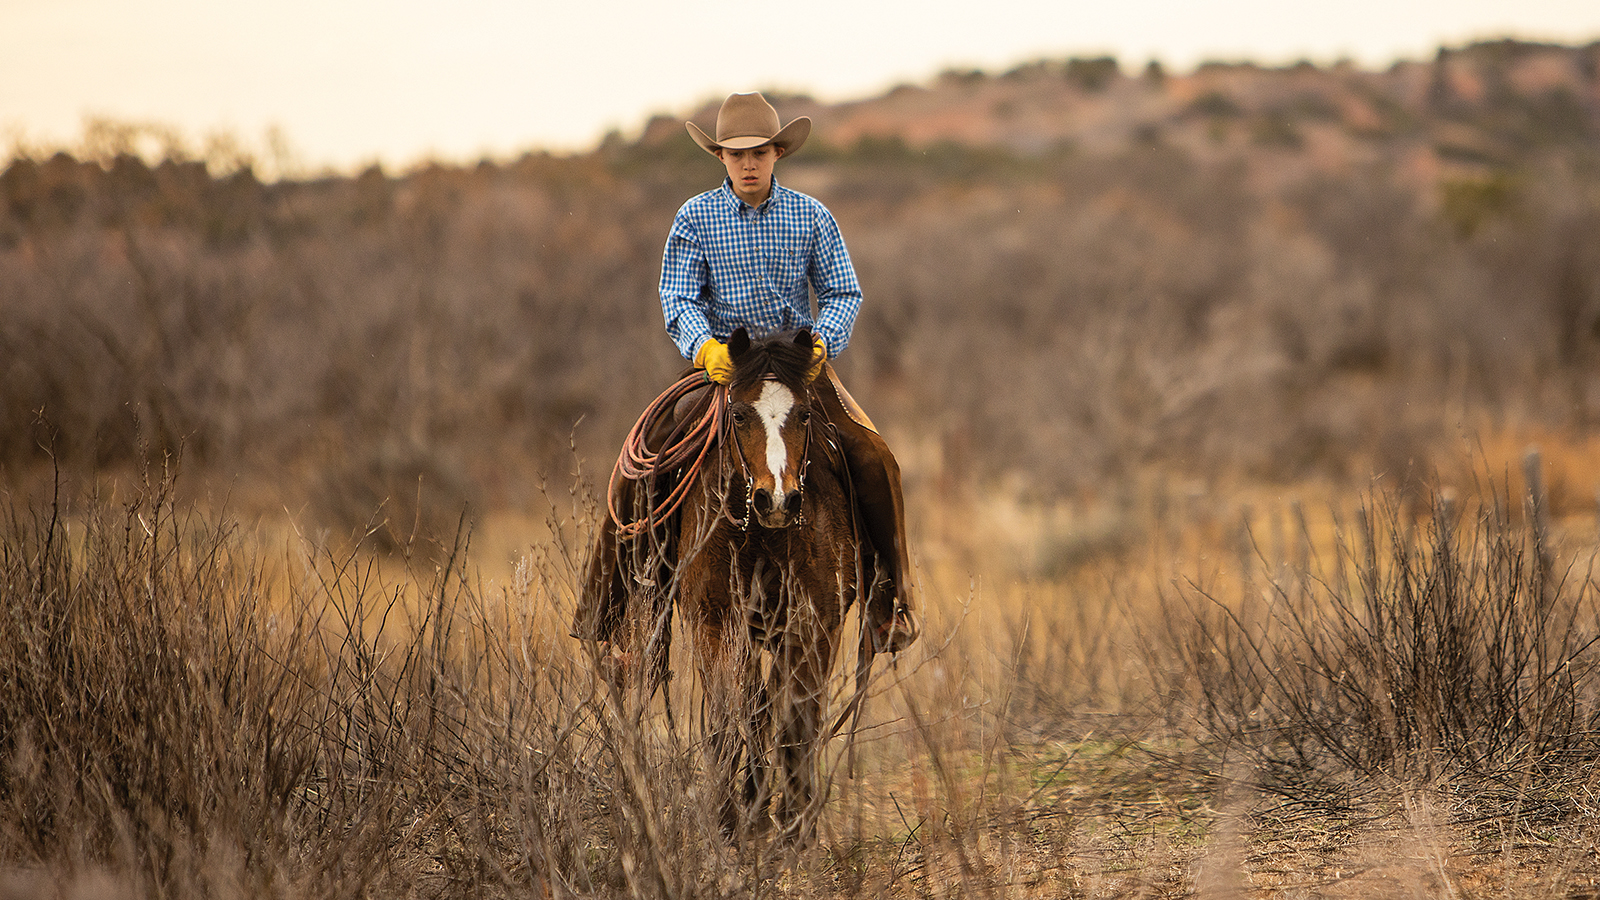 Tugboat will be auctioned at the Western Heritage Classic Horse Sale in May in Abilene, Texas.